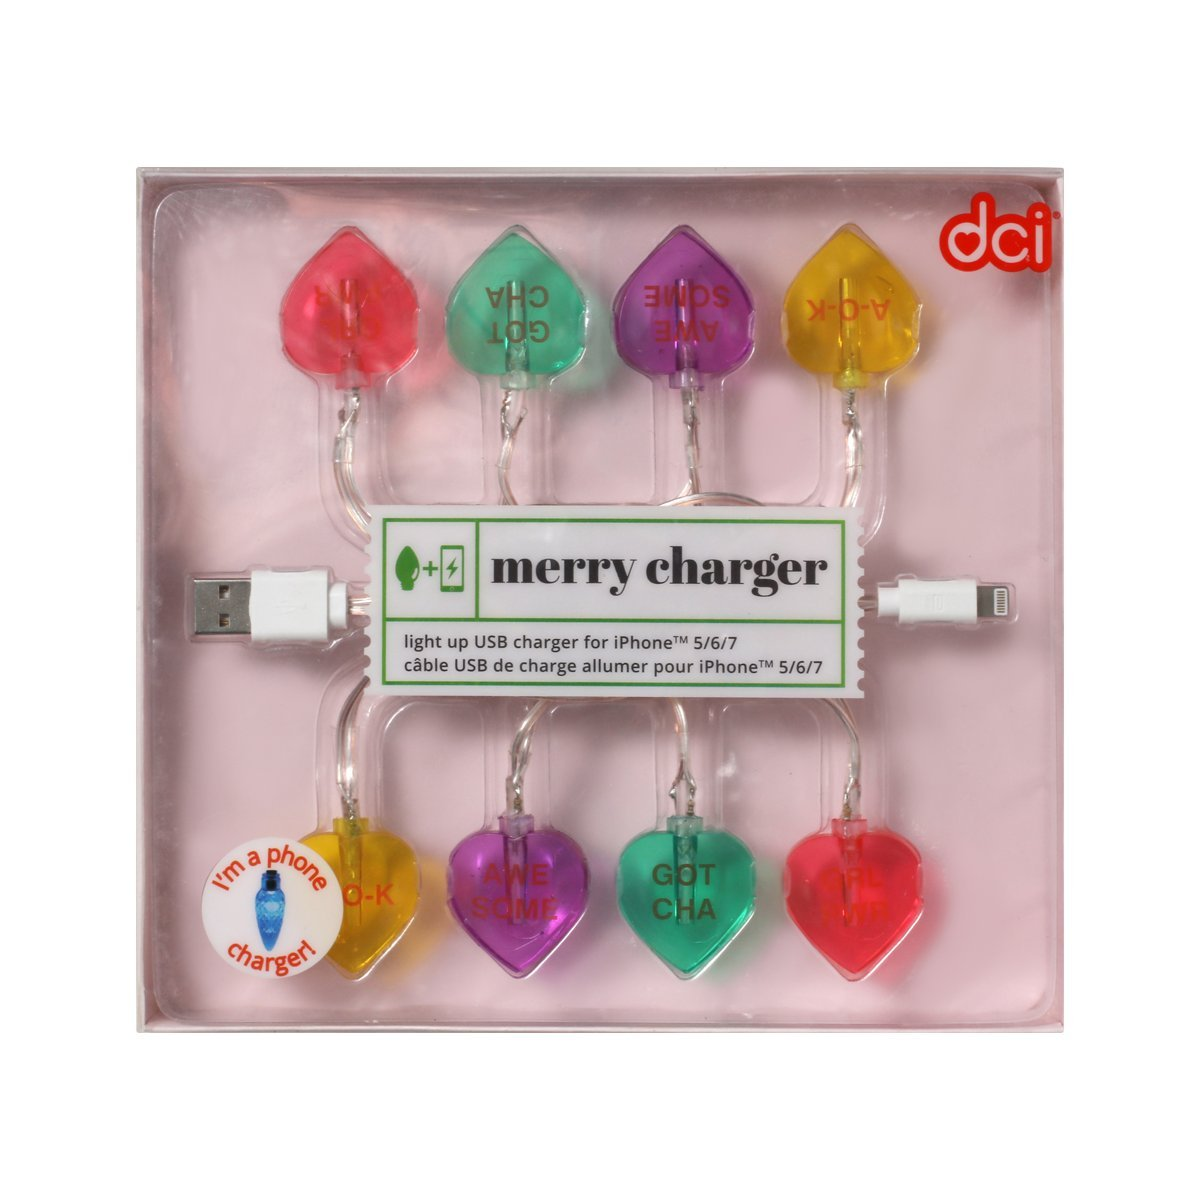 46 inch Glow in the Dark Compatible with iPhone 5 6 7 models USB and Charging Cable DCI Unicorn LED Lights